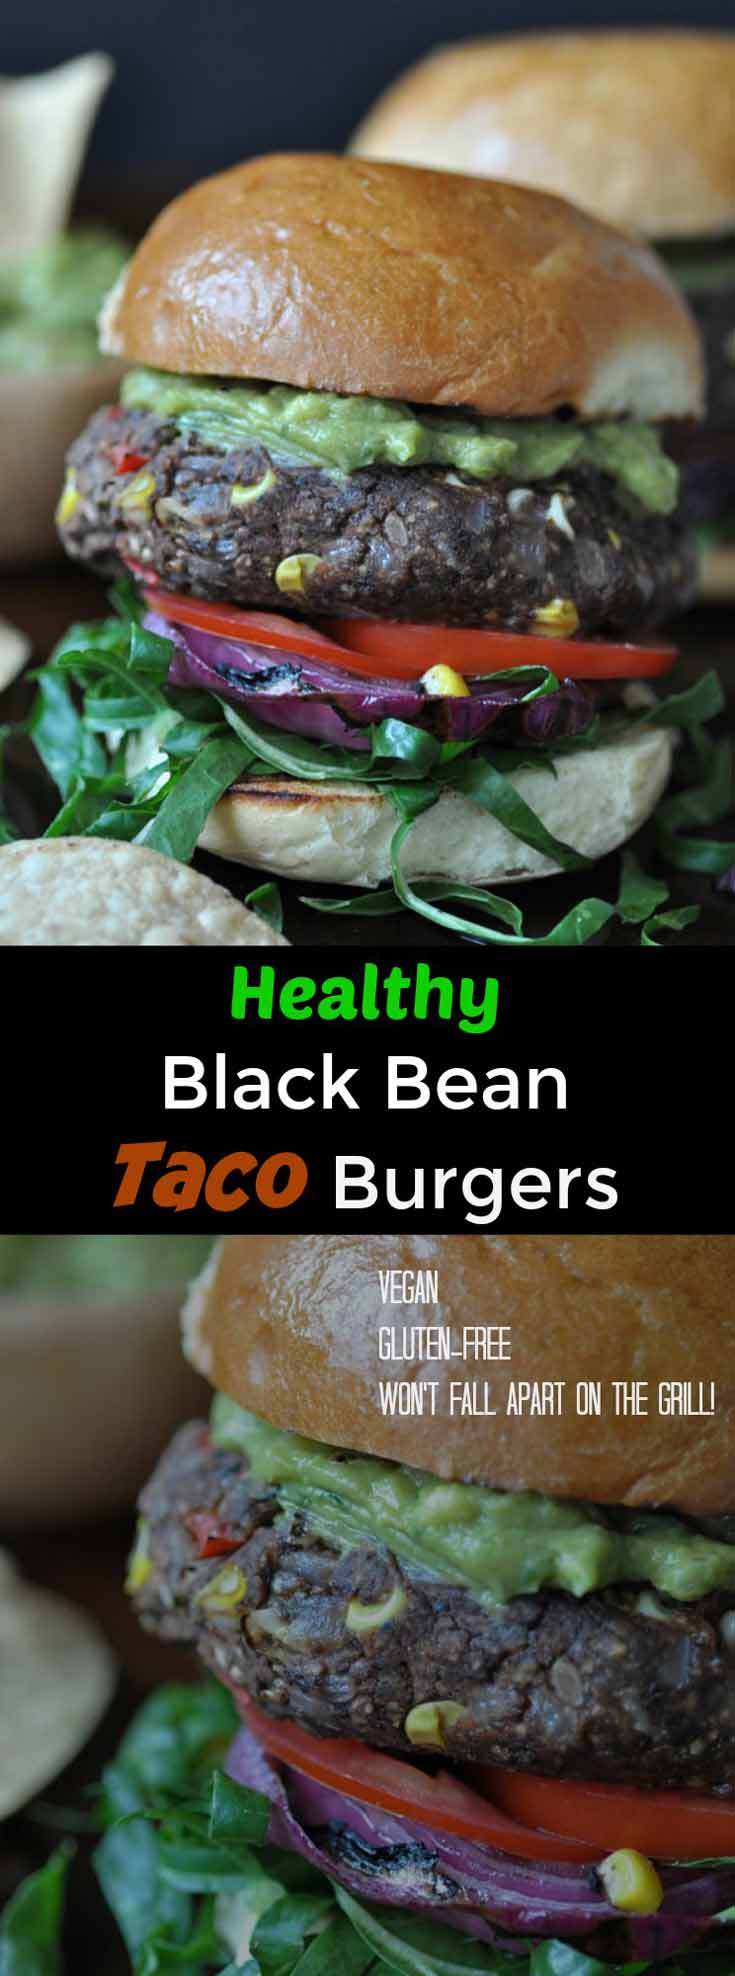 A Pinterest pin for black bean tacos with 2 pictures of the burgers.